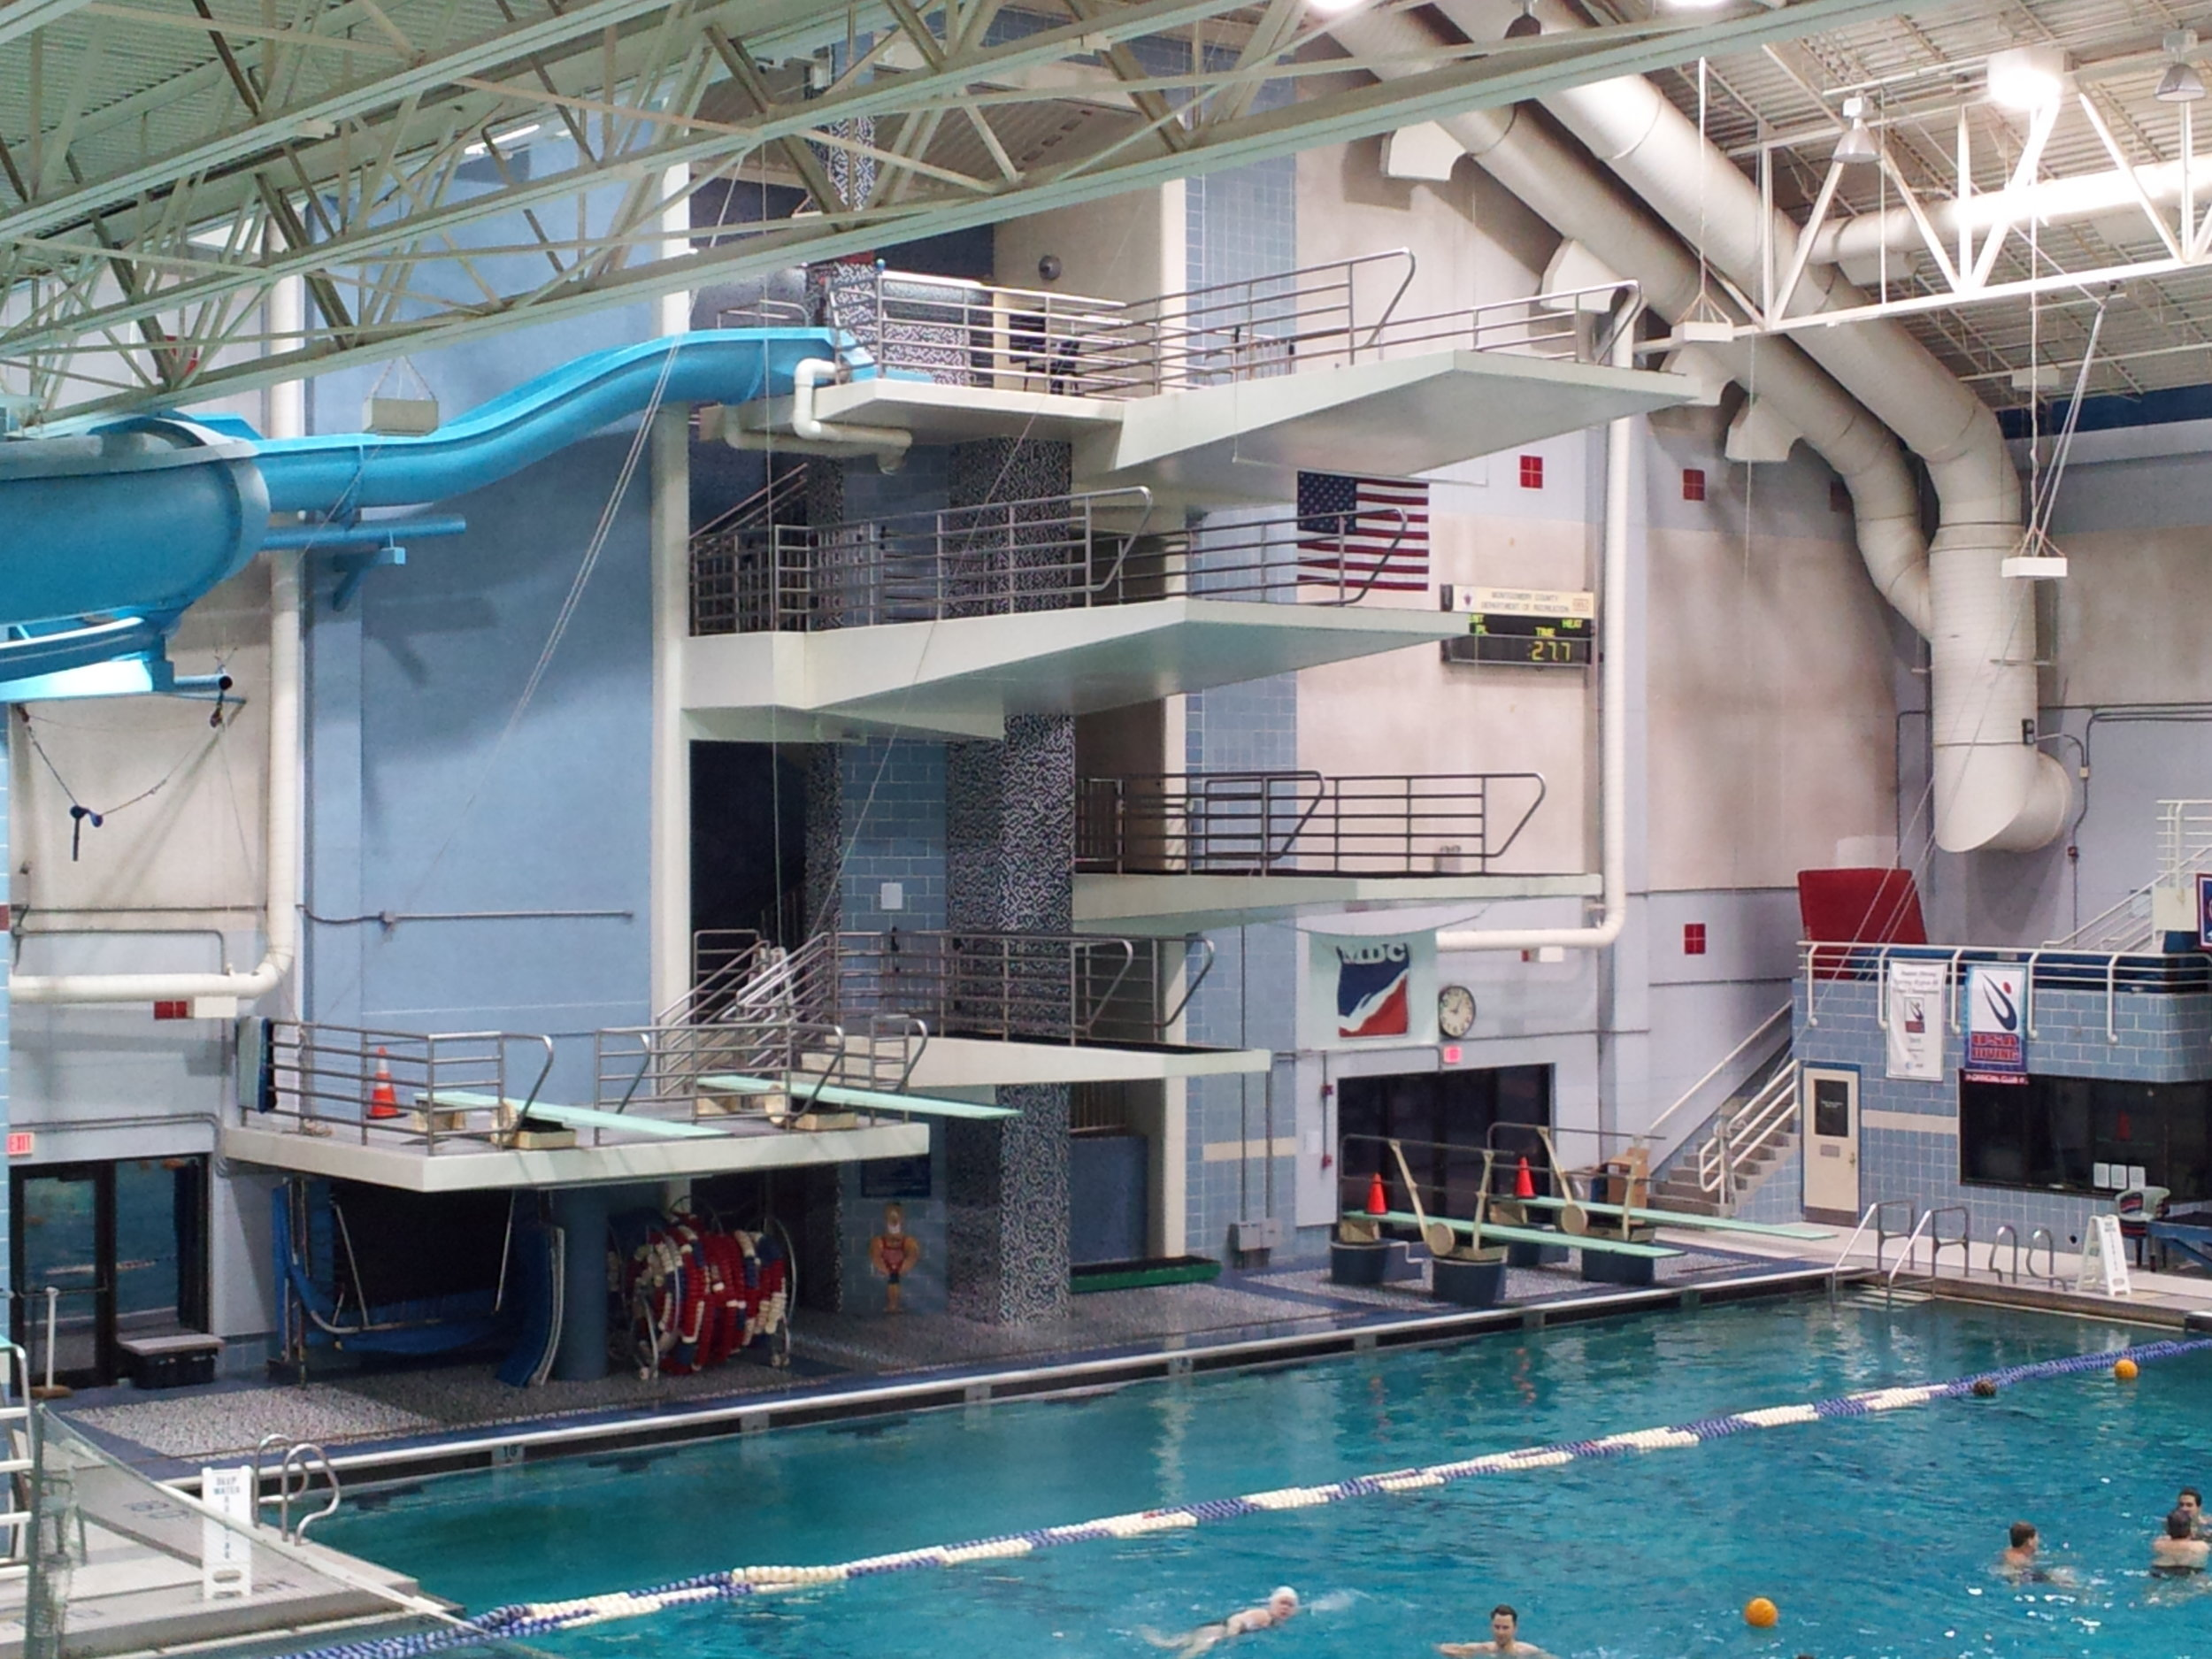 The Kennedy Shriver Aquatic Center in Rockville, Maryland.